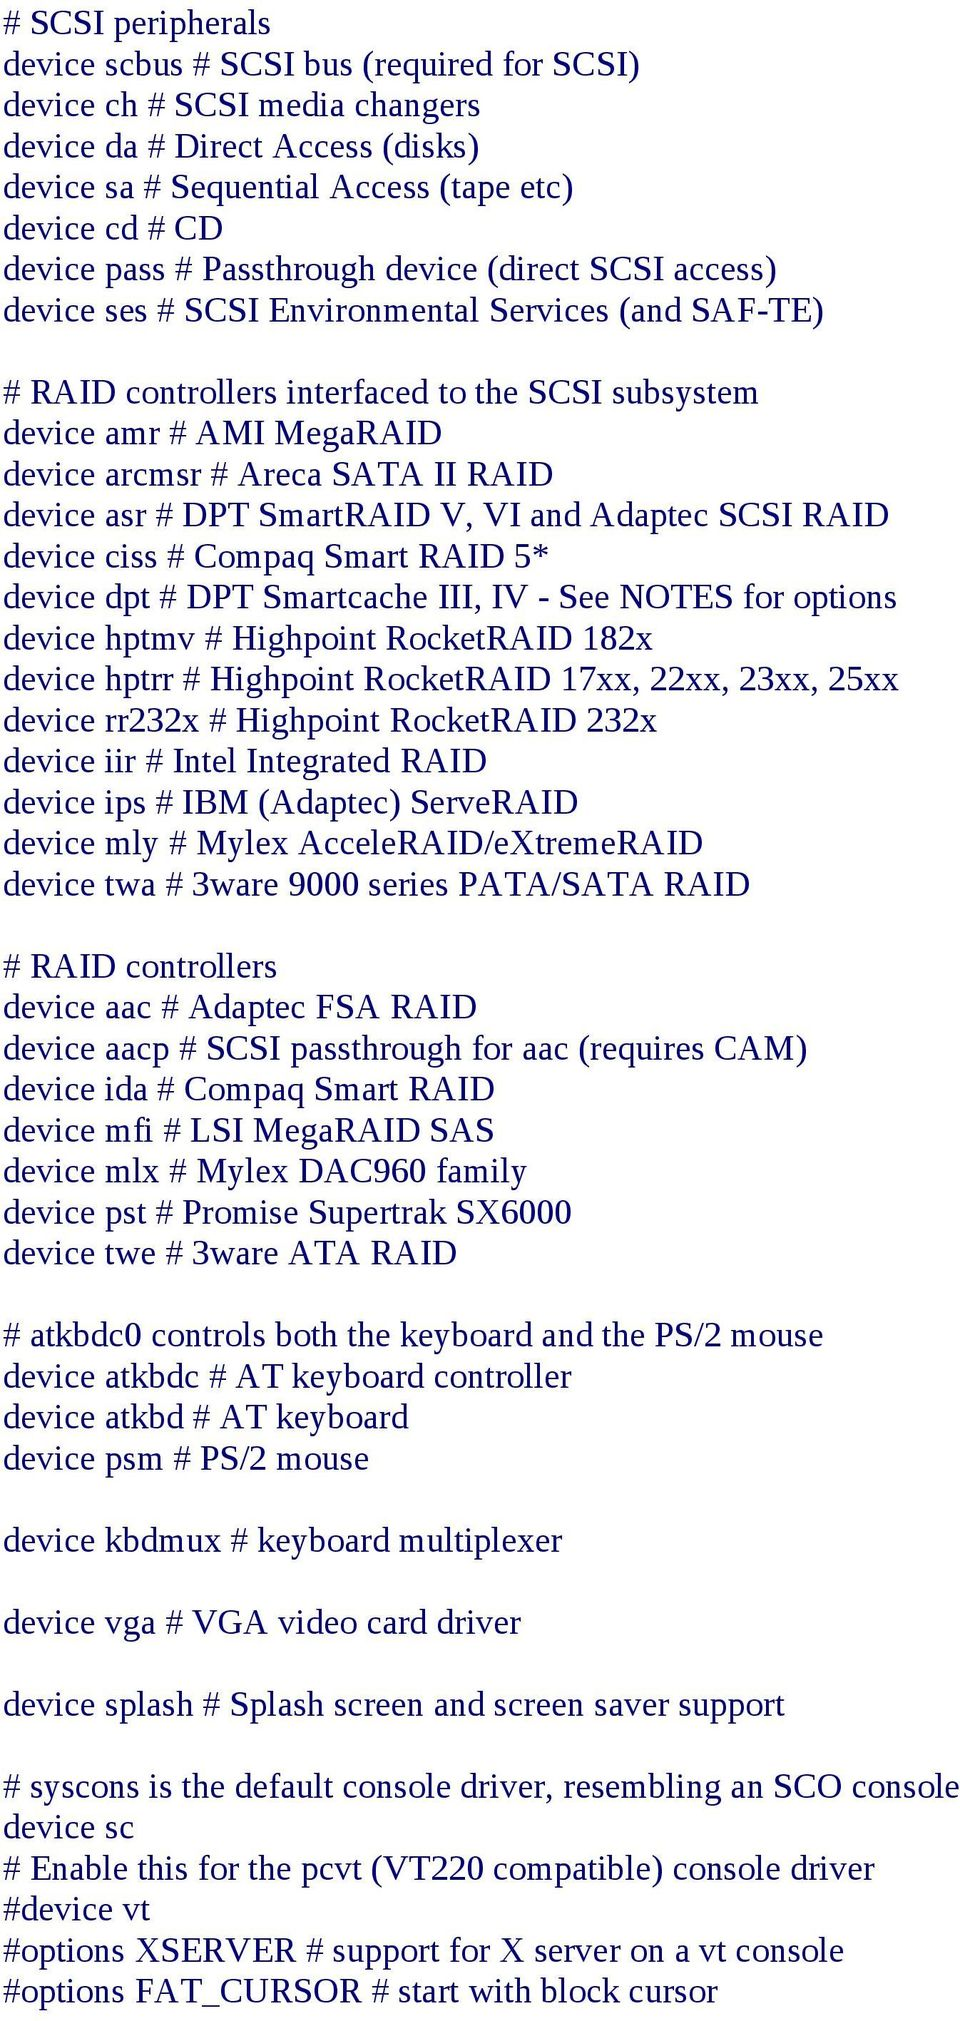 DPT SmartRAID V, VI and Adaptec SCSI RAID device ciss Compaq Smart RAID 5* device dpt DPT Smartcache III, IV - See NOTES for options device hptmv Highpoint RocketRAID 182x device hptrr Highpoint